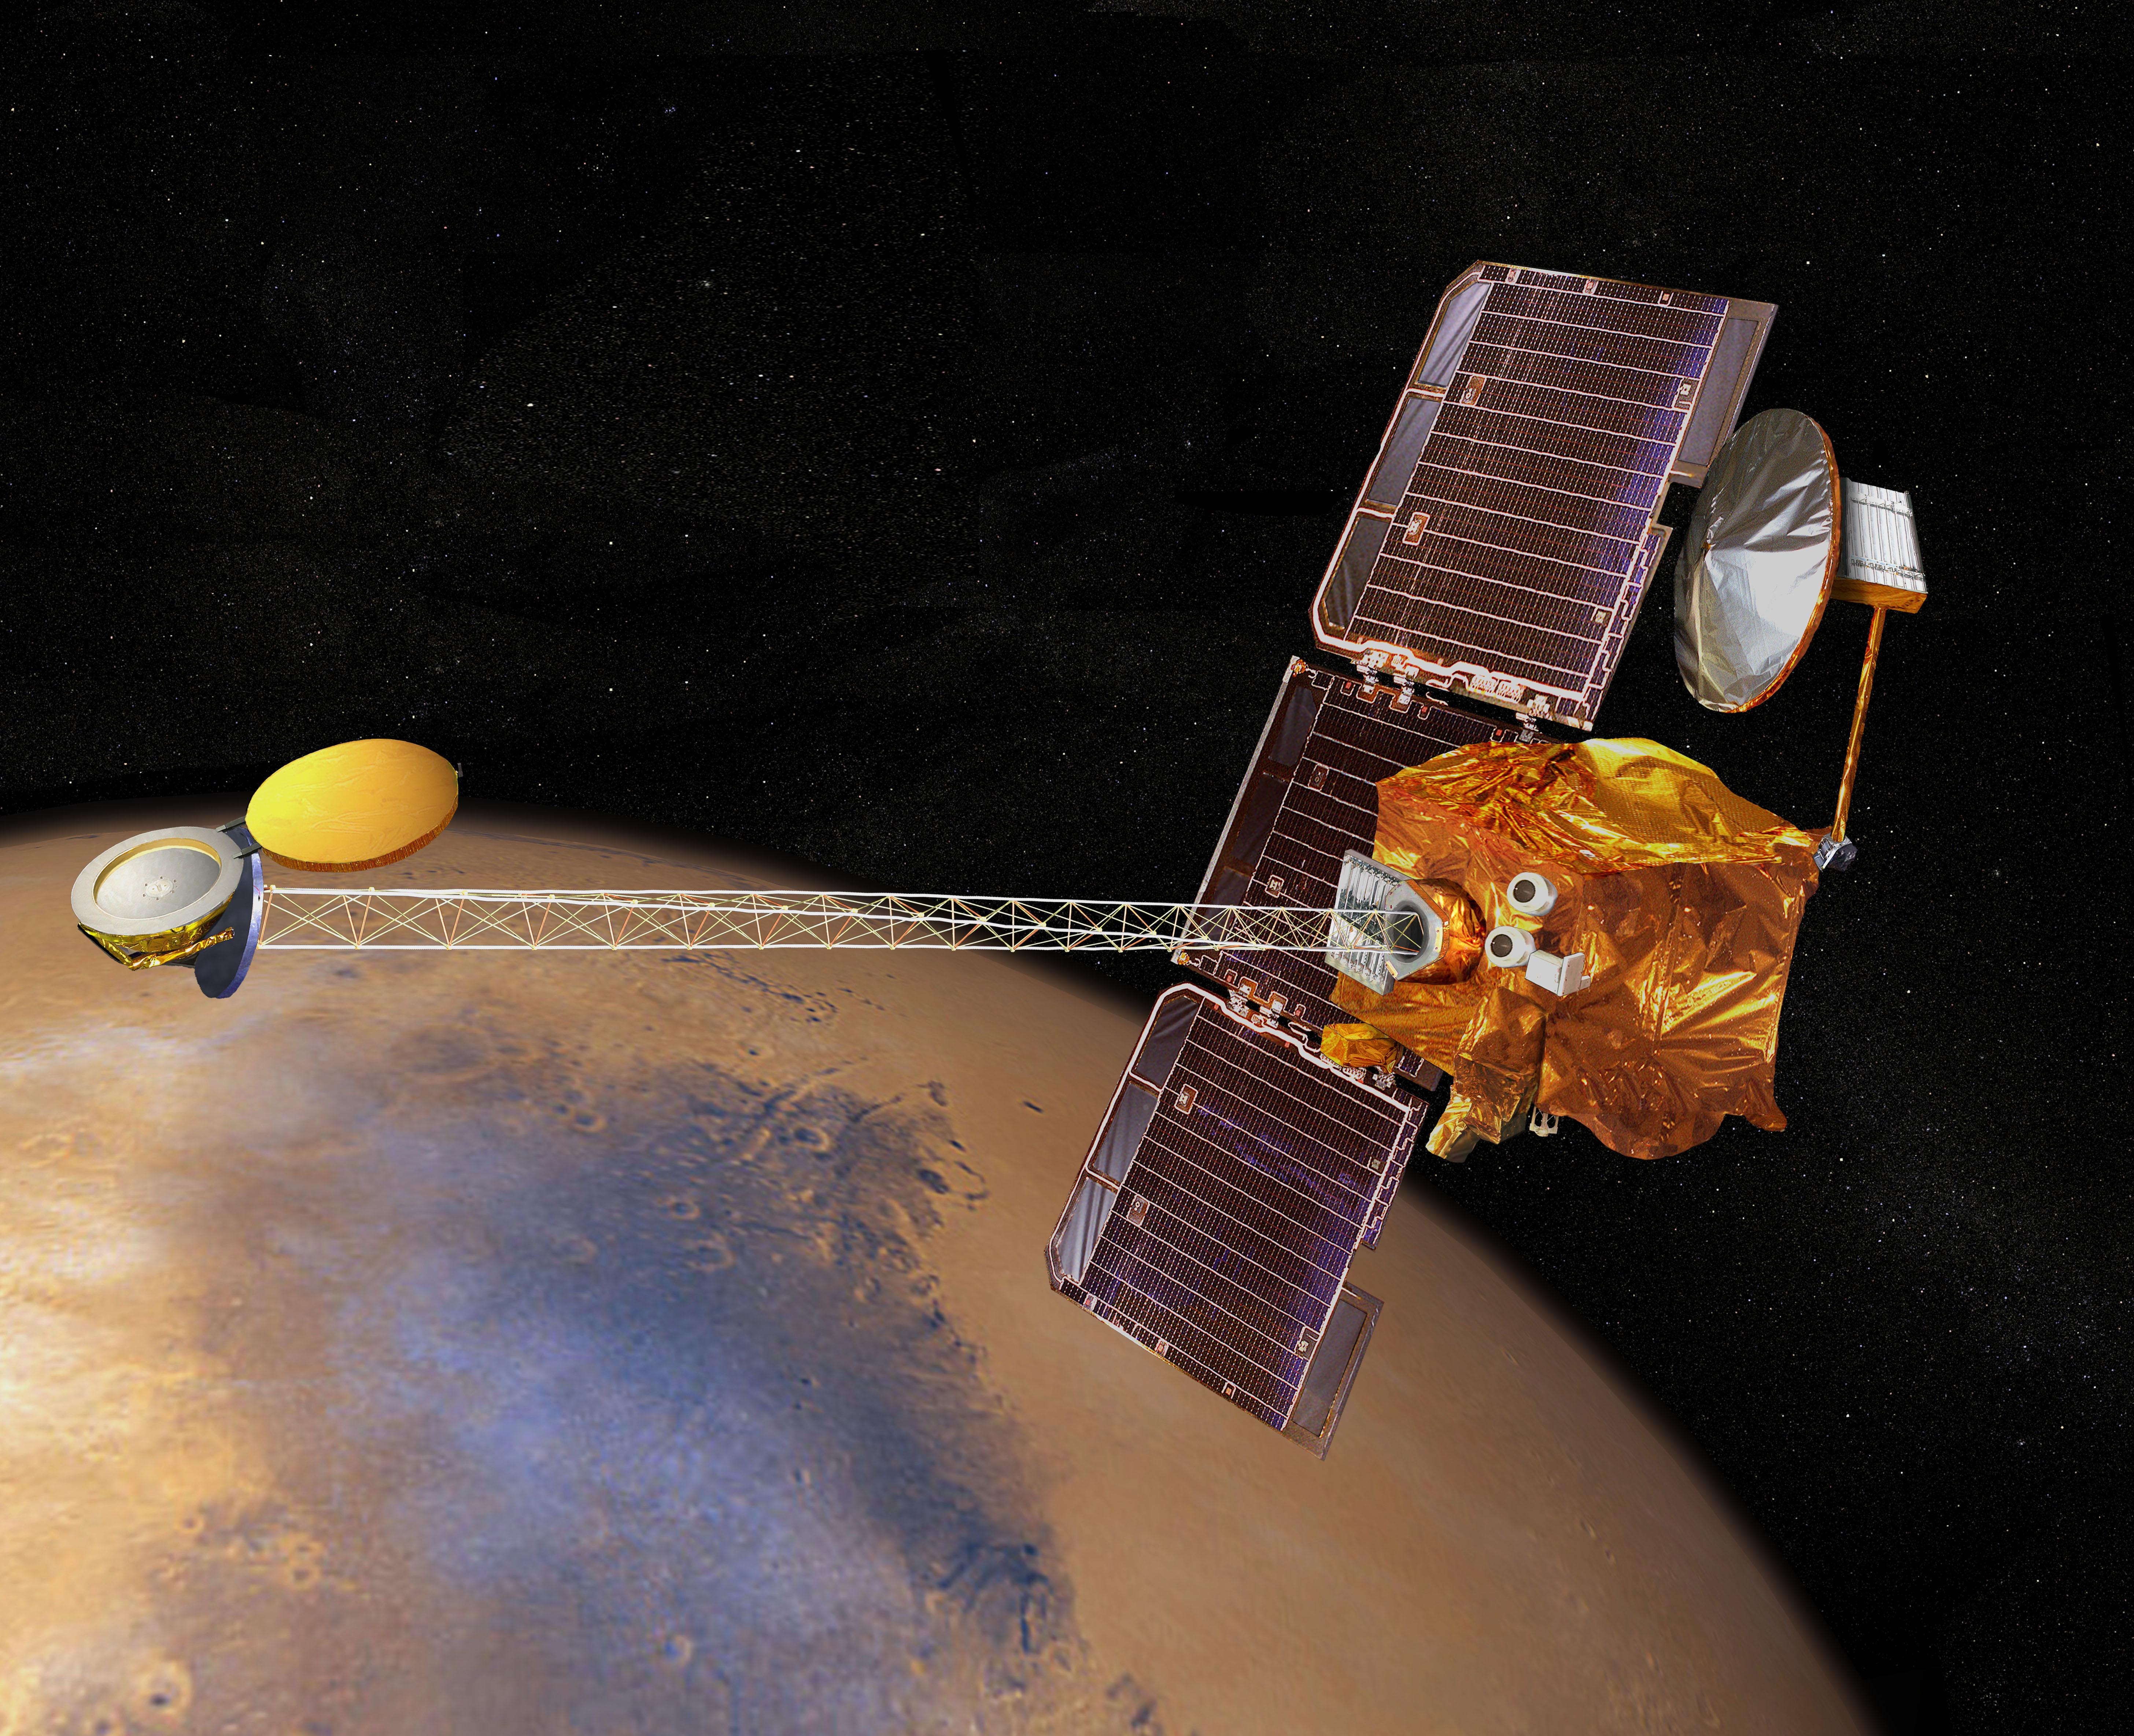 Artist's Concept of Mars Odyssey